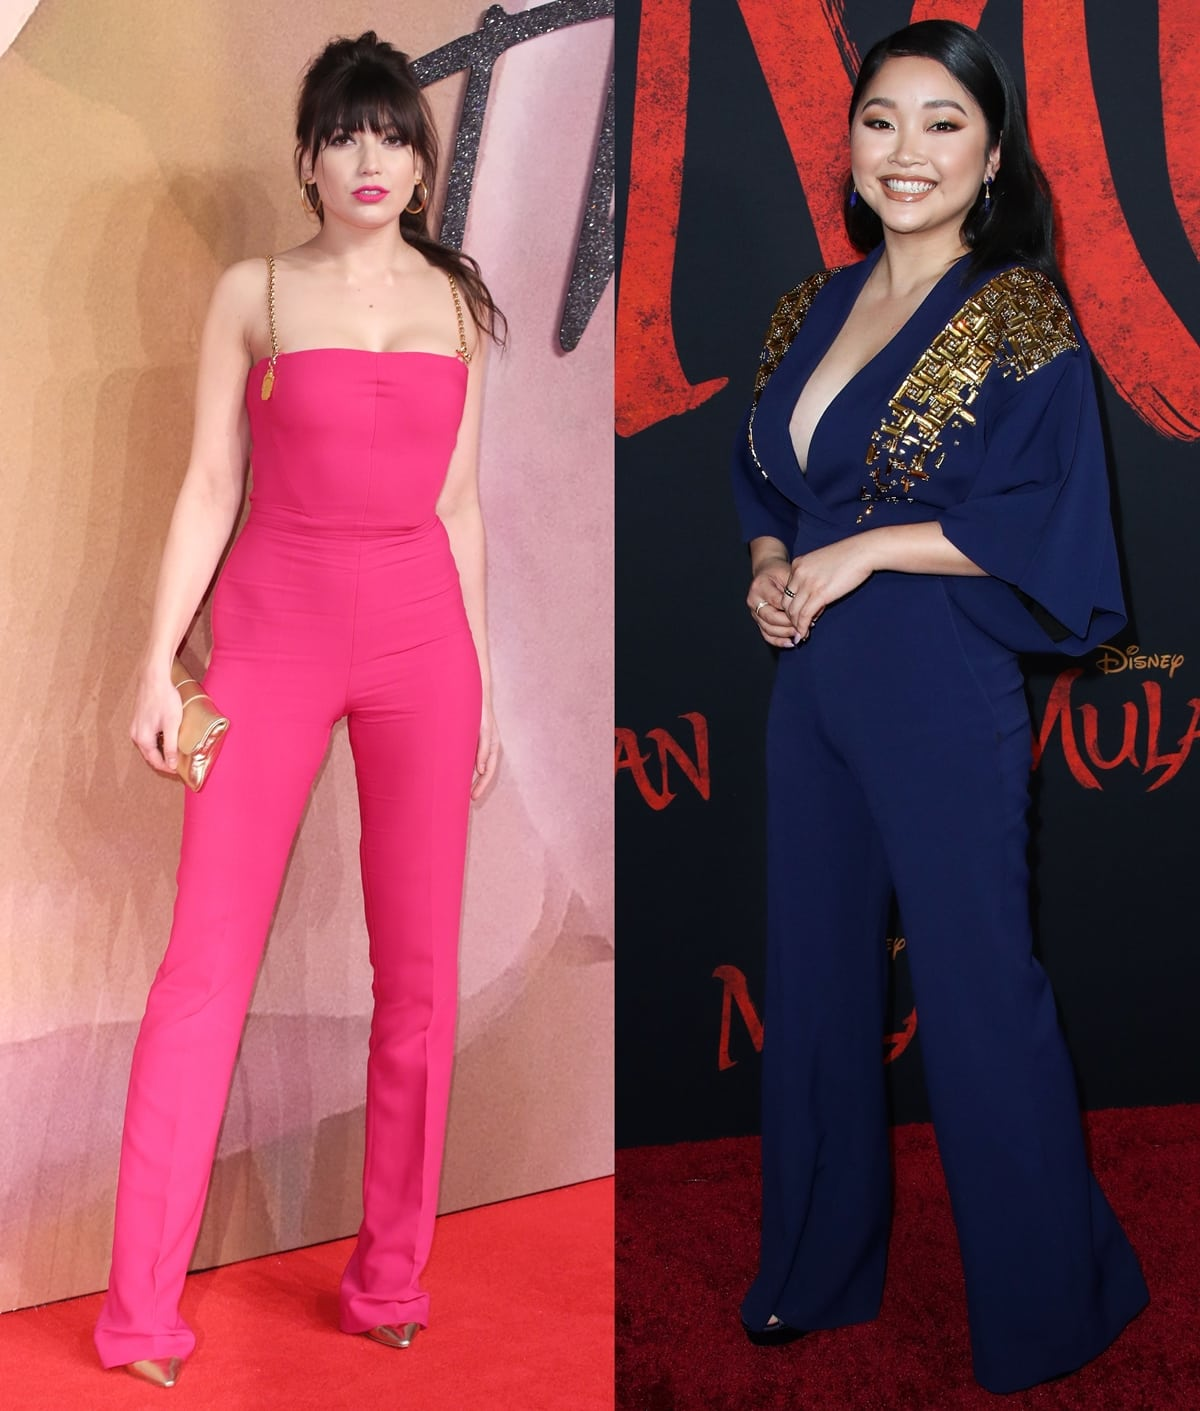 Daisy Lowe in a pink stretch-cady Antonio Berardi jumpsuit with chain straps (L) and Lana Condor in a navy Antonio Berardi jumpsuit with beaded gold shoulders